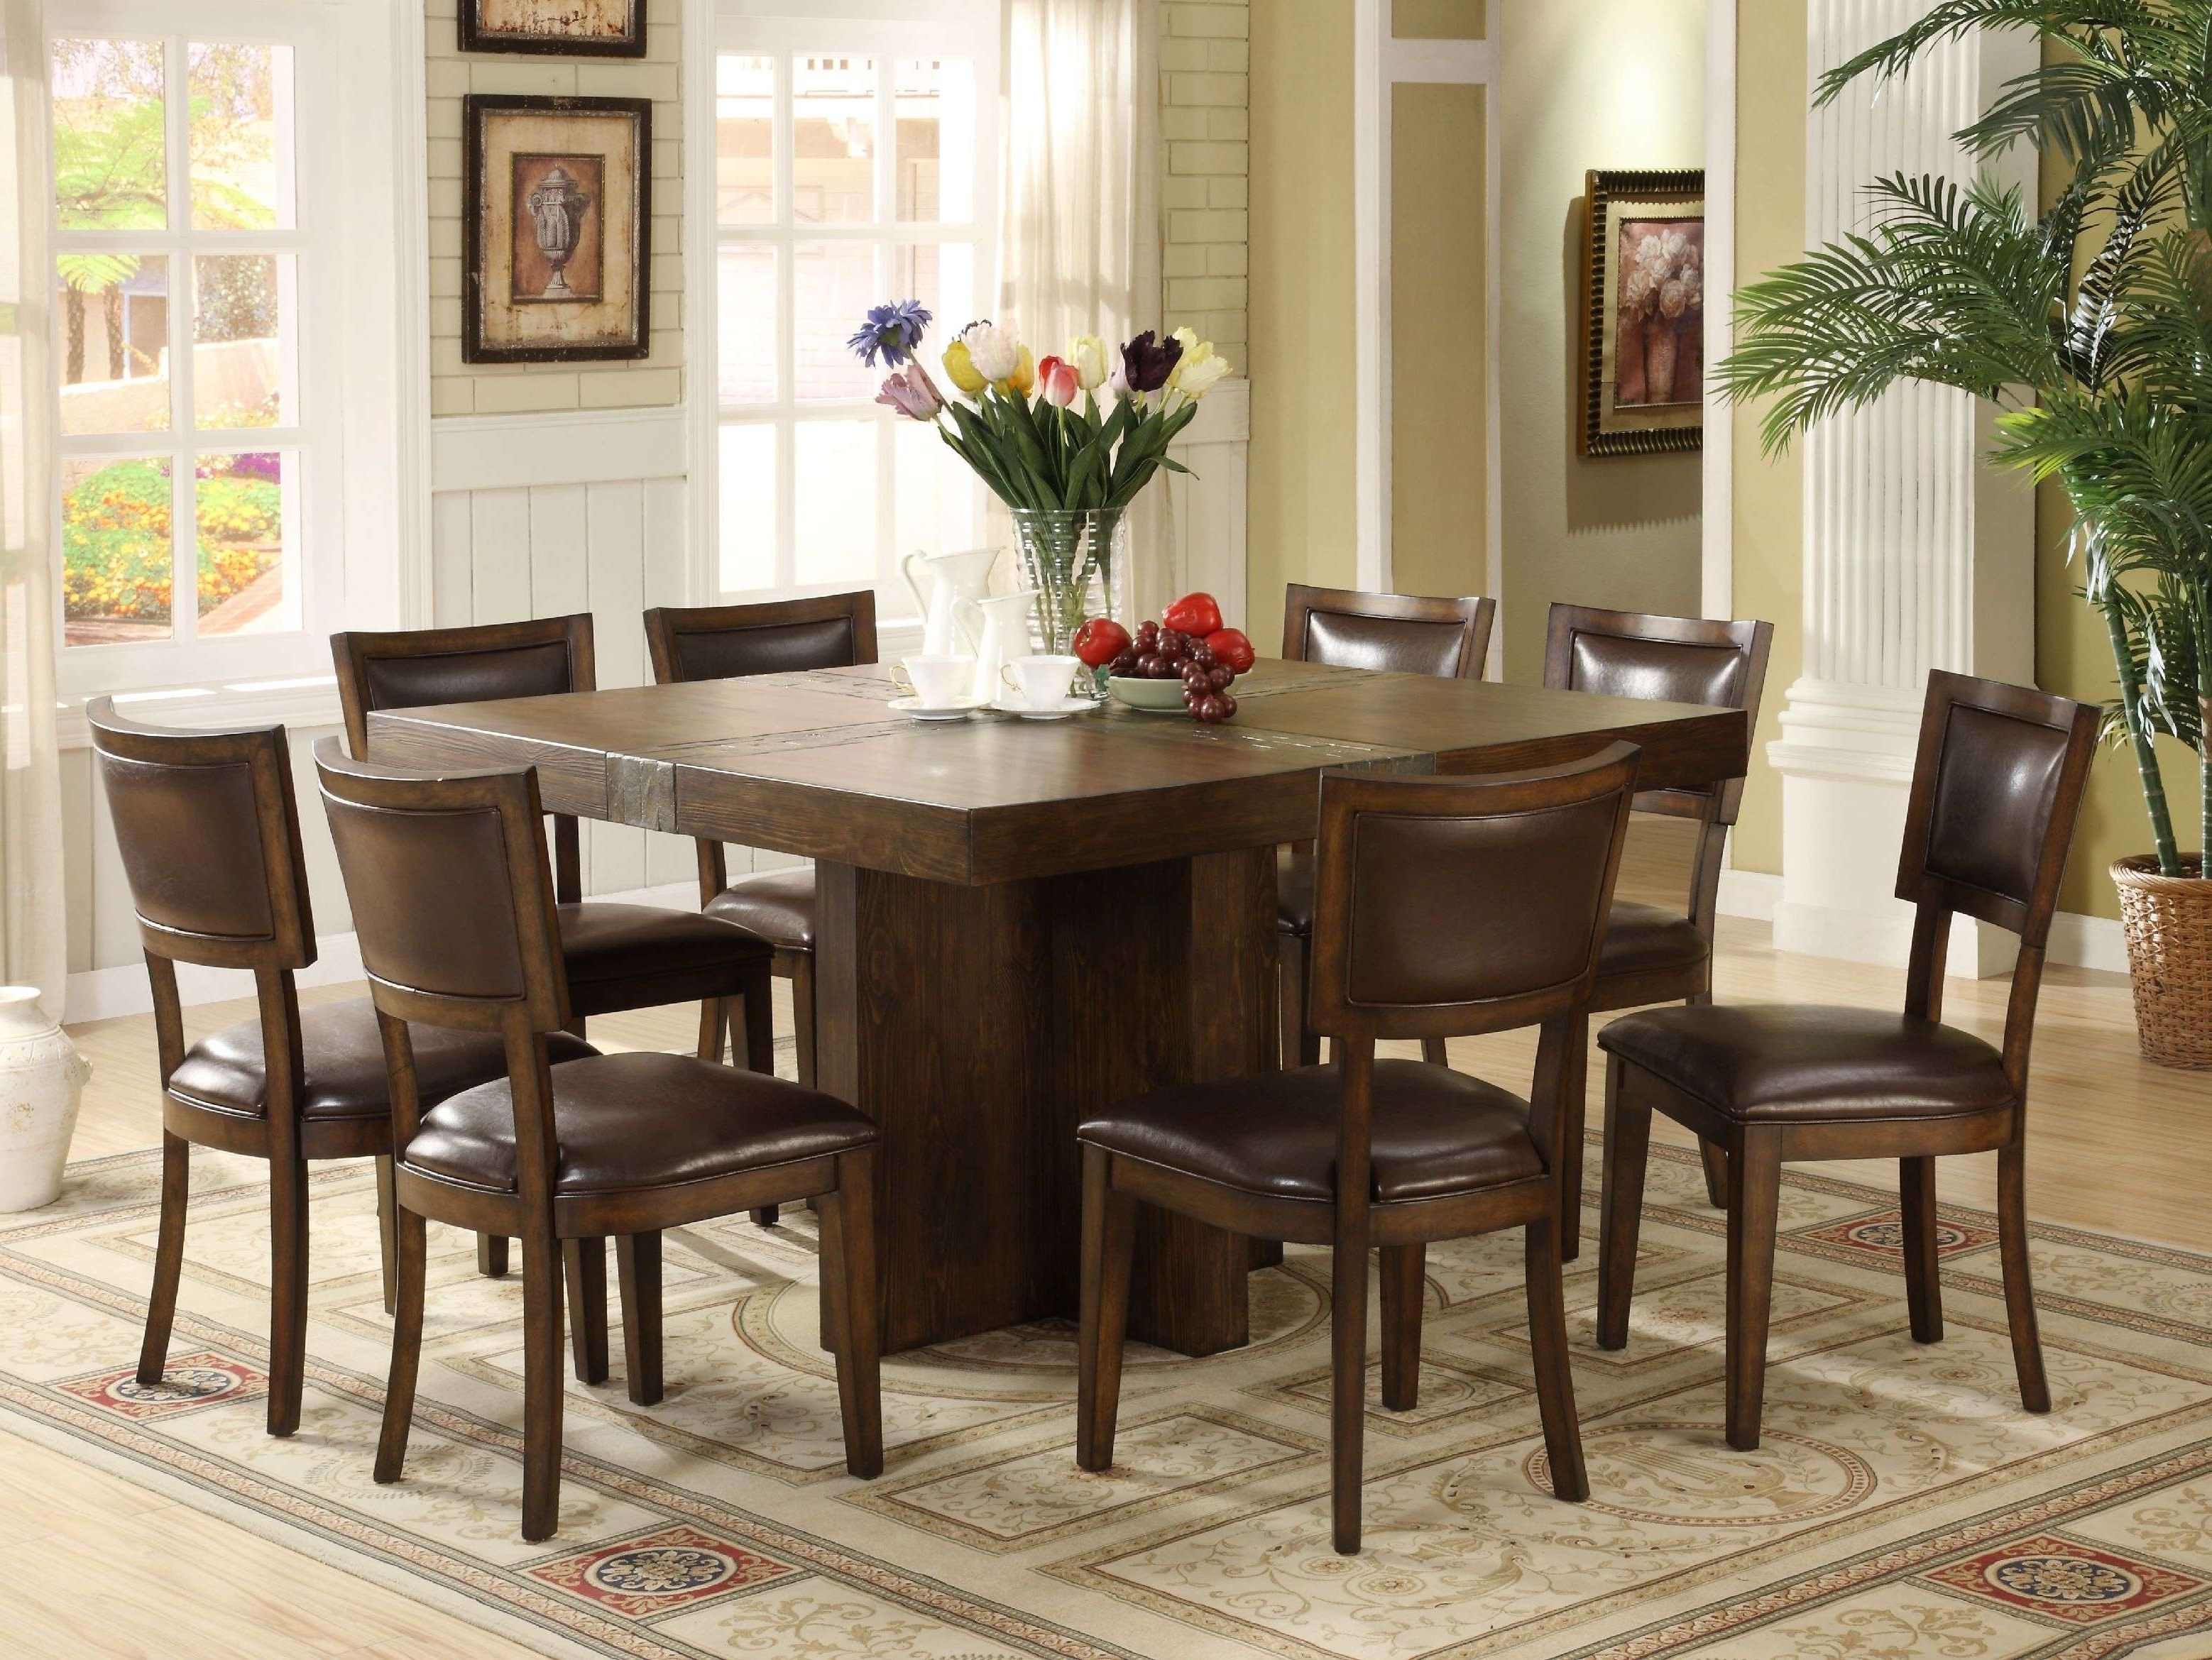 Trendy 8 Seater Dining Table Sets Regarding 10 Seater Dining Table And Chairs Beautiful Best 8 Seater Dining (View 7 of 25)